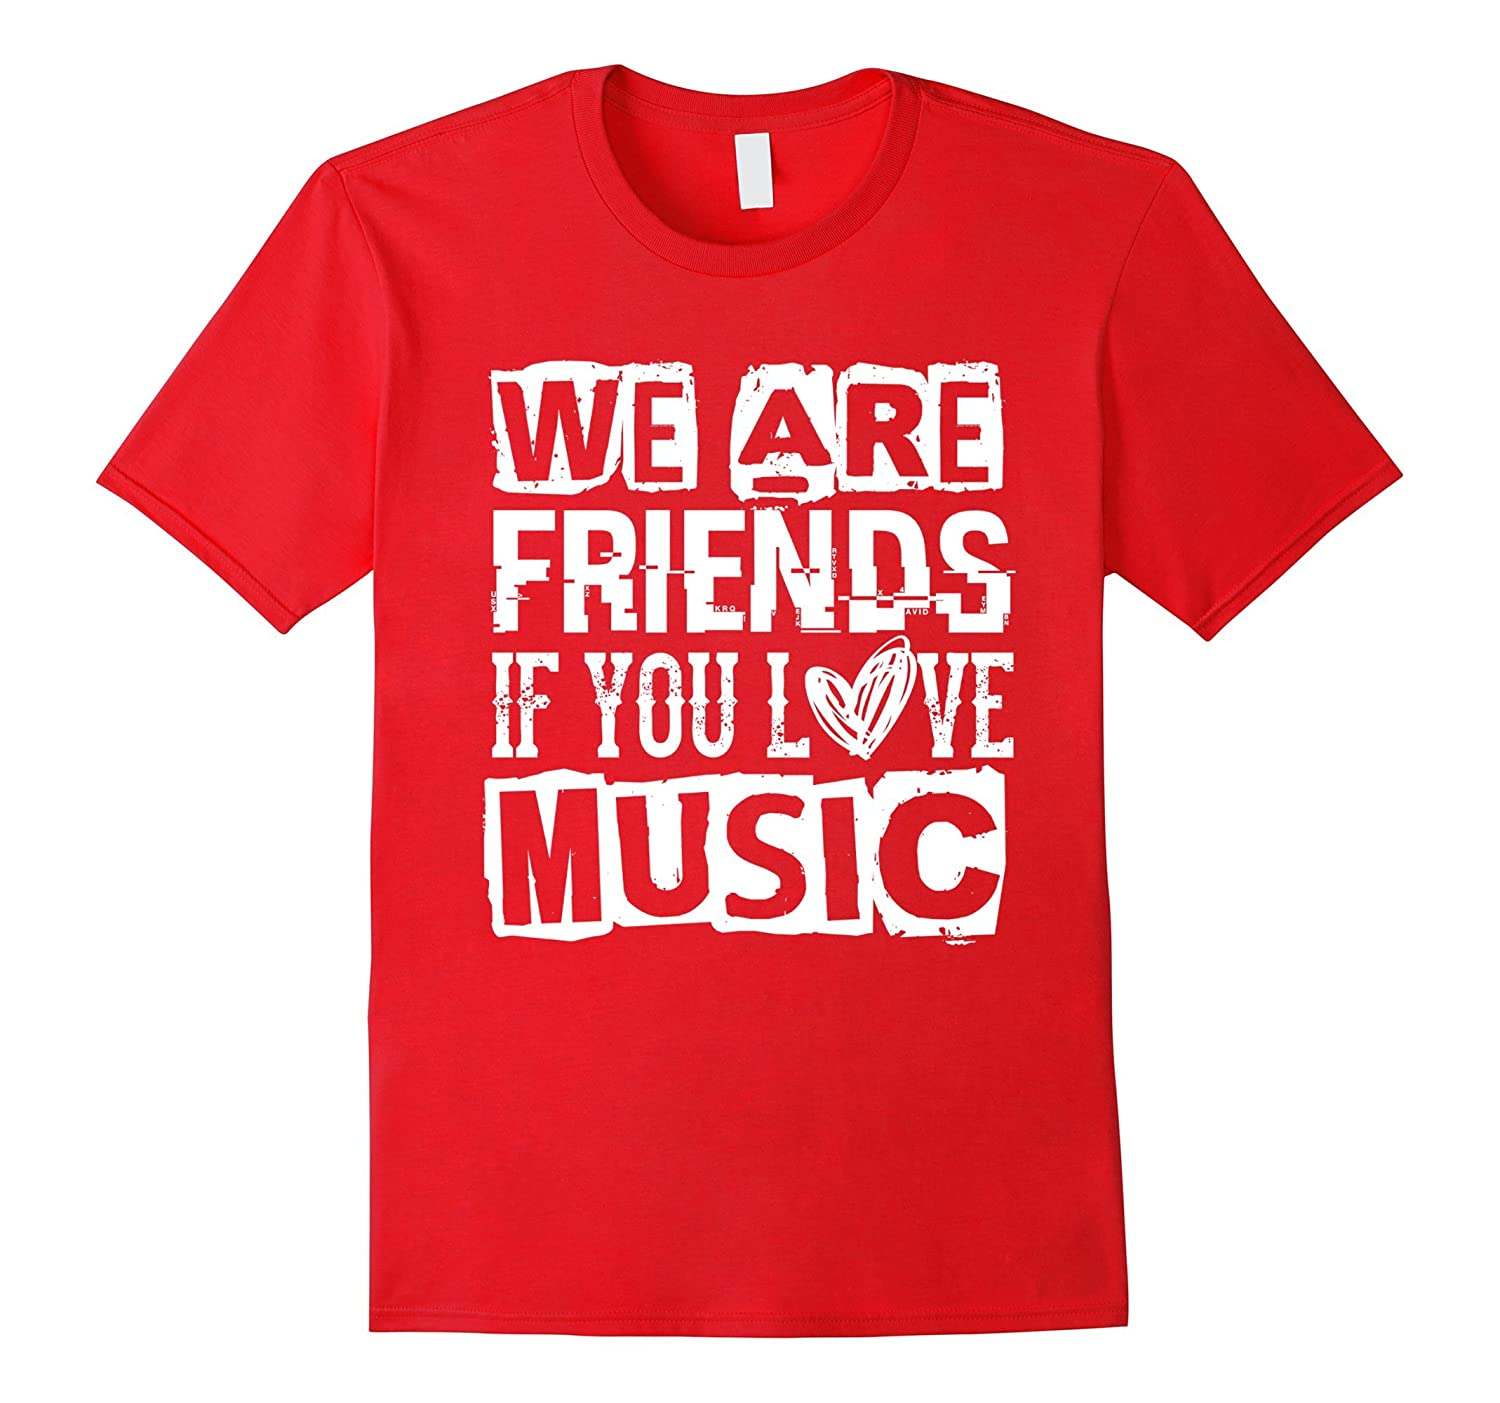 We Are Friends If You Love Music - T Shirt-Vaci